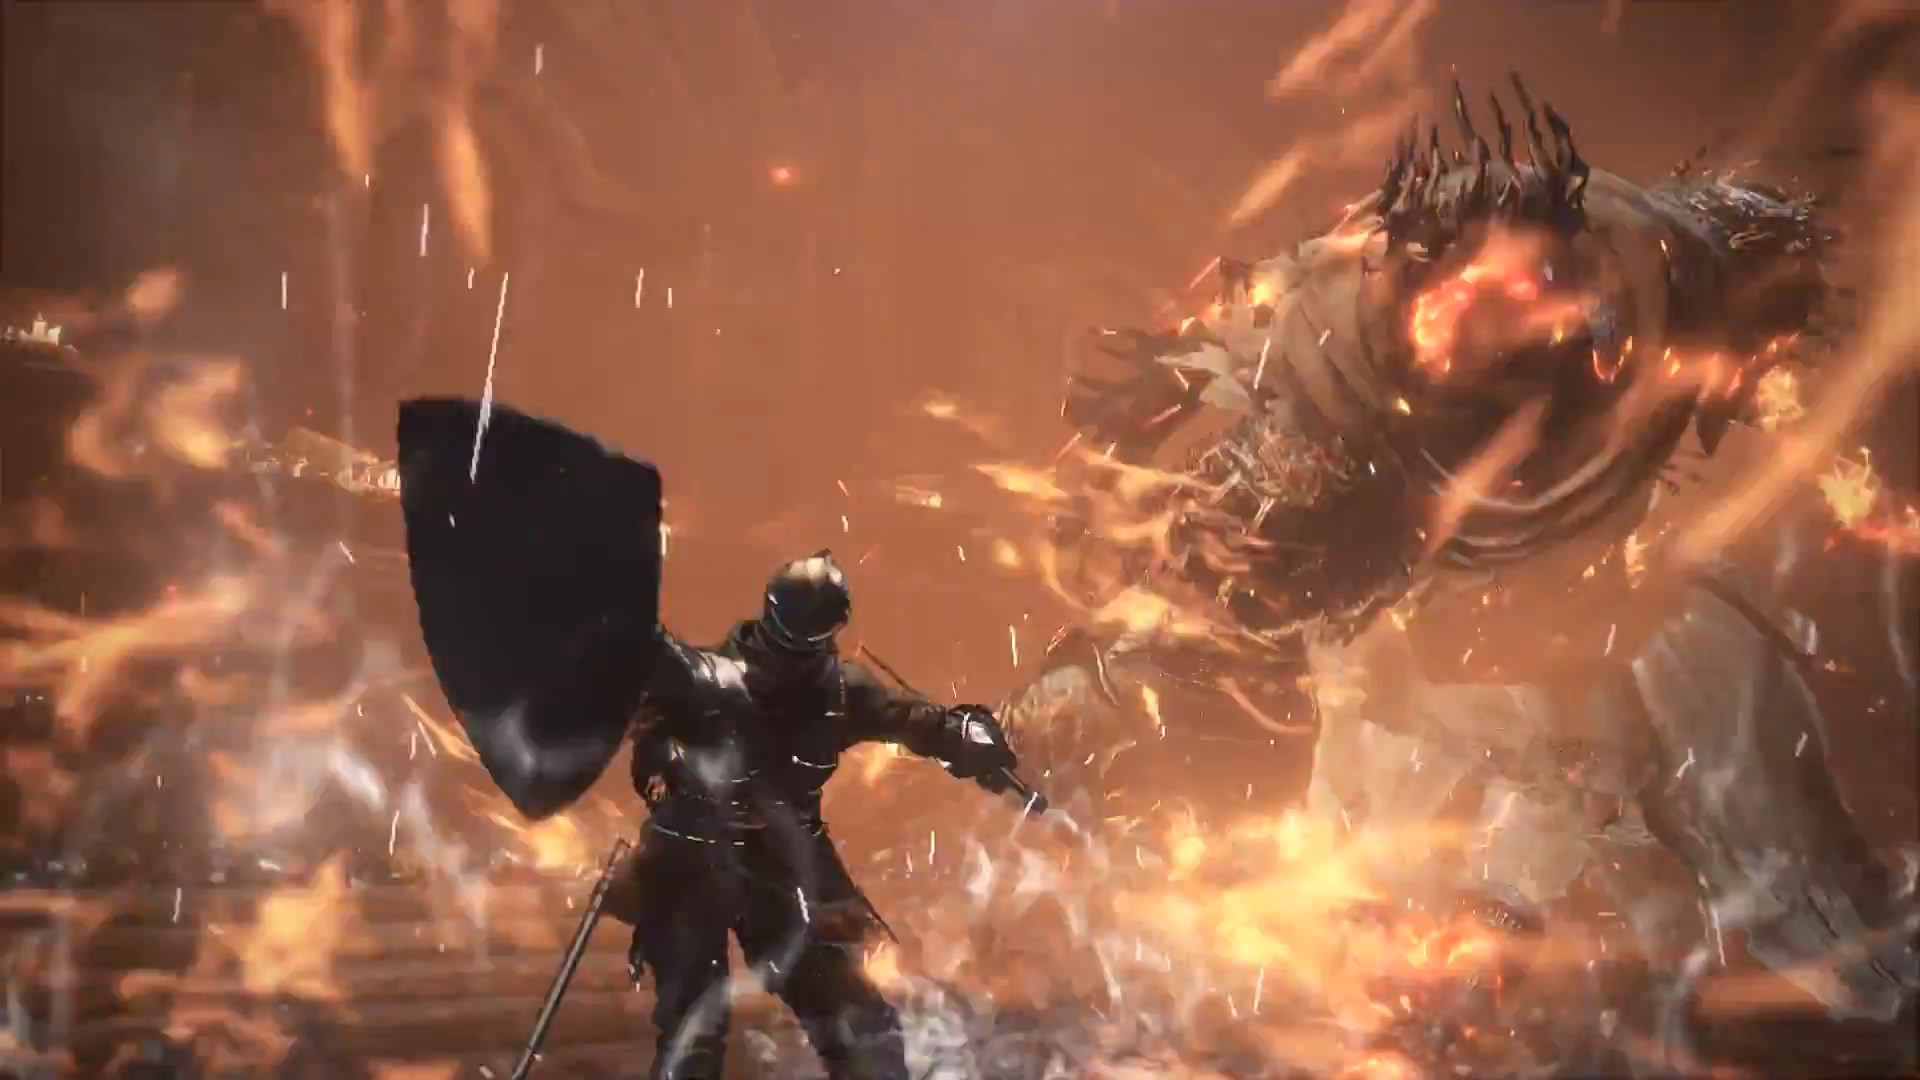 Dark souls iii now avalable for preload on steam